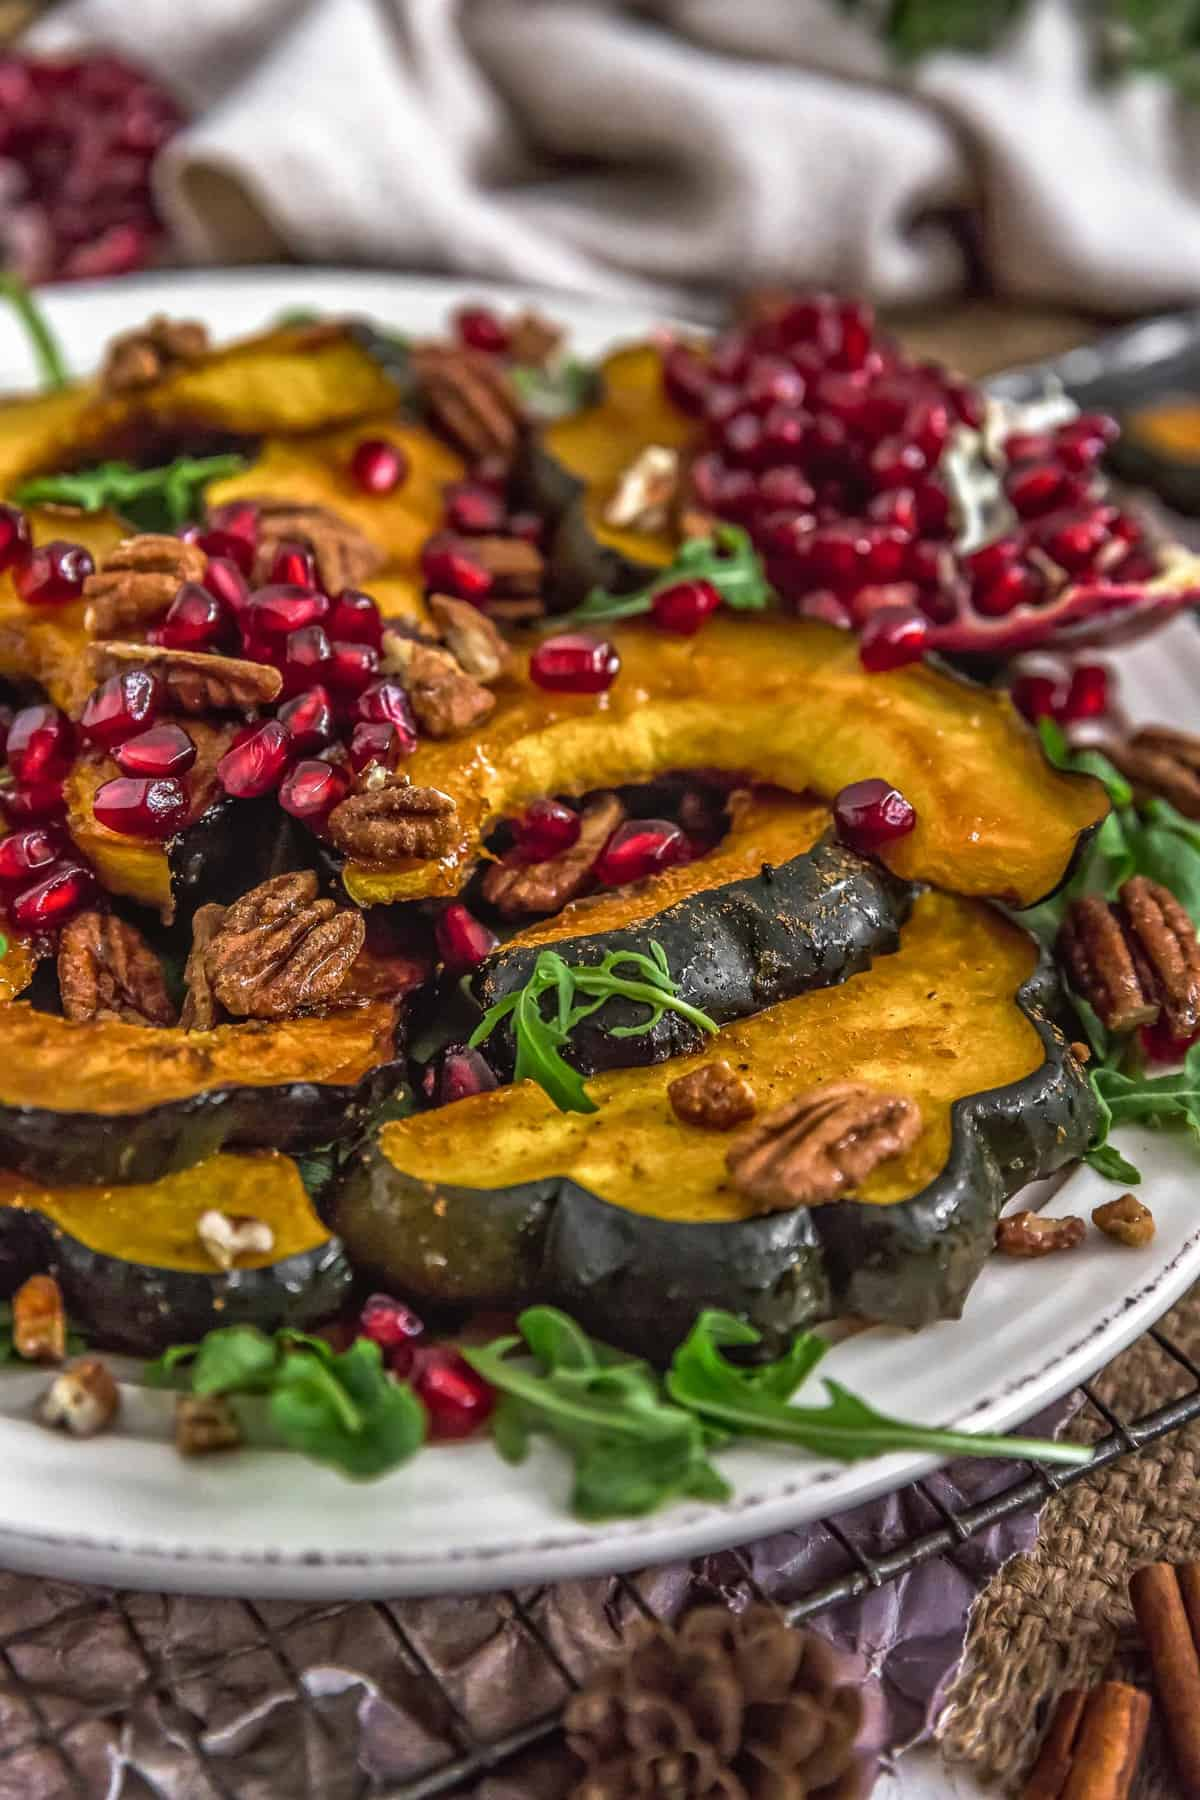 Plated Roasted Maple Glazed Acorn Squash with Cinnamon Pecans